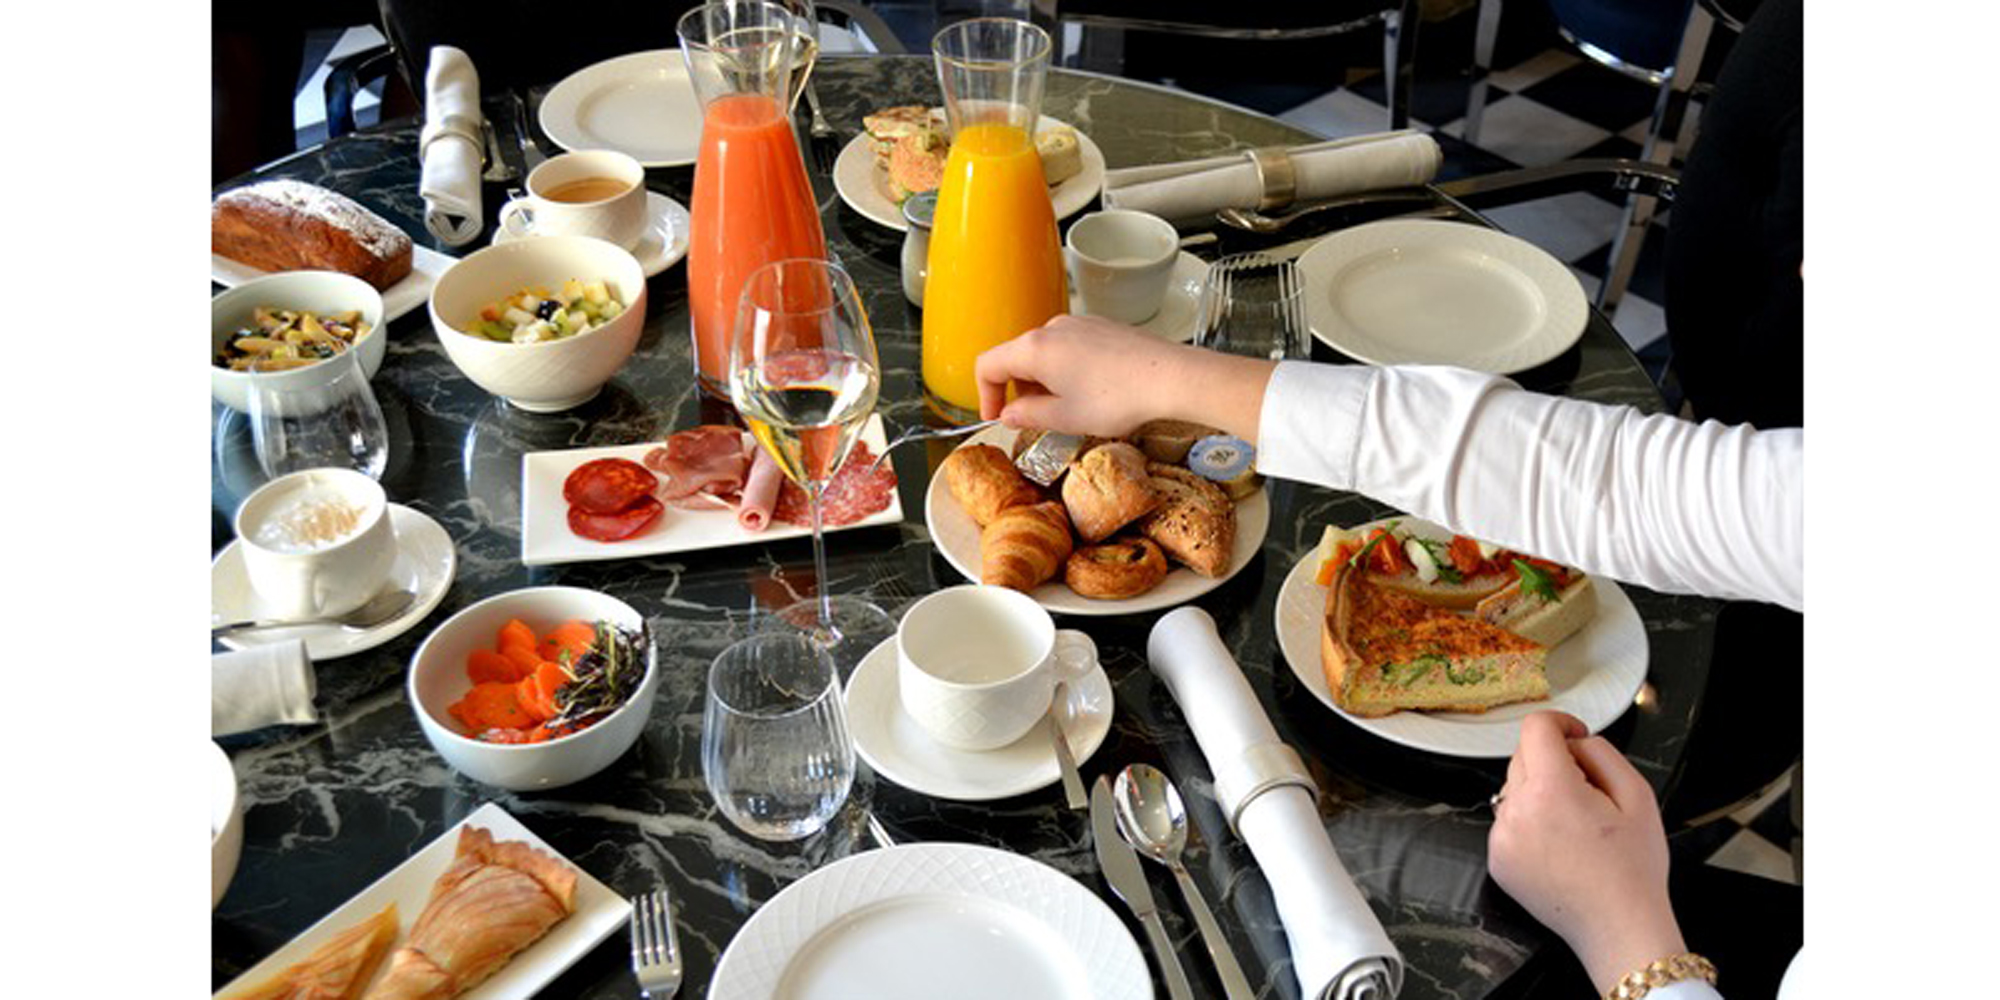 Brunch Hôtel Le Palais Gallien (33000 Bordeaux)